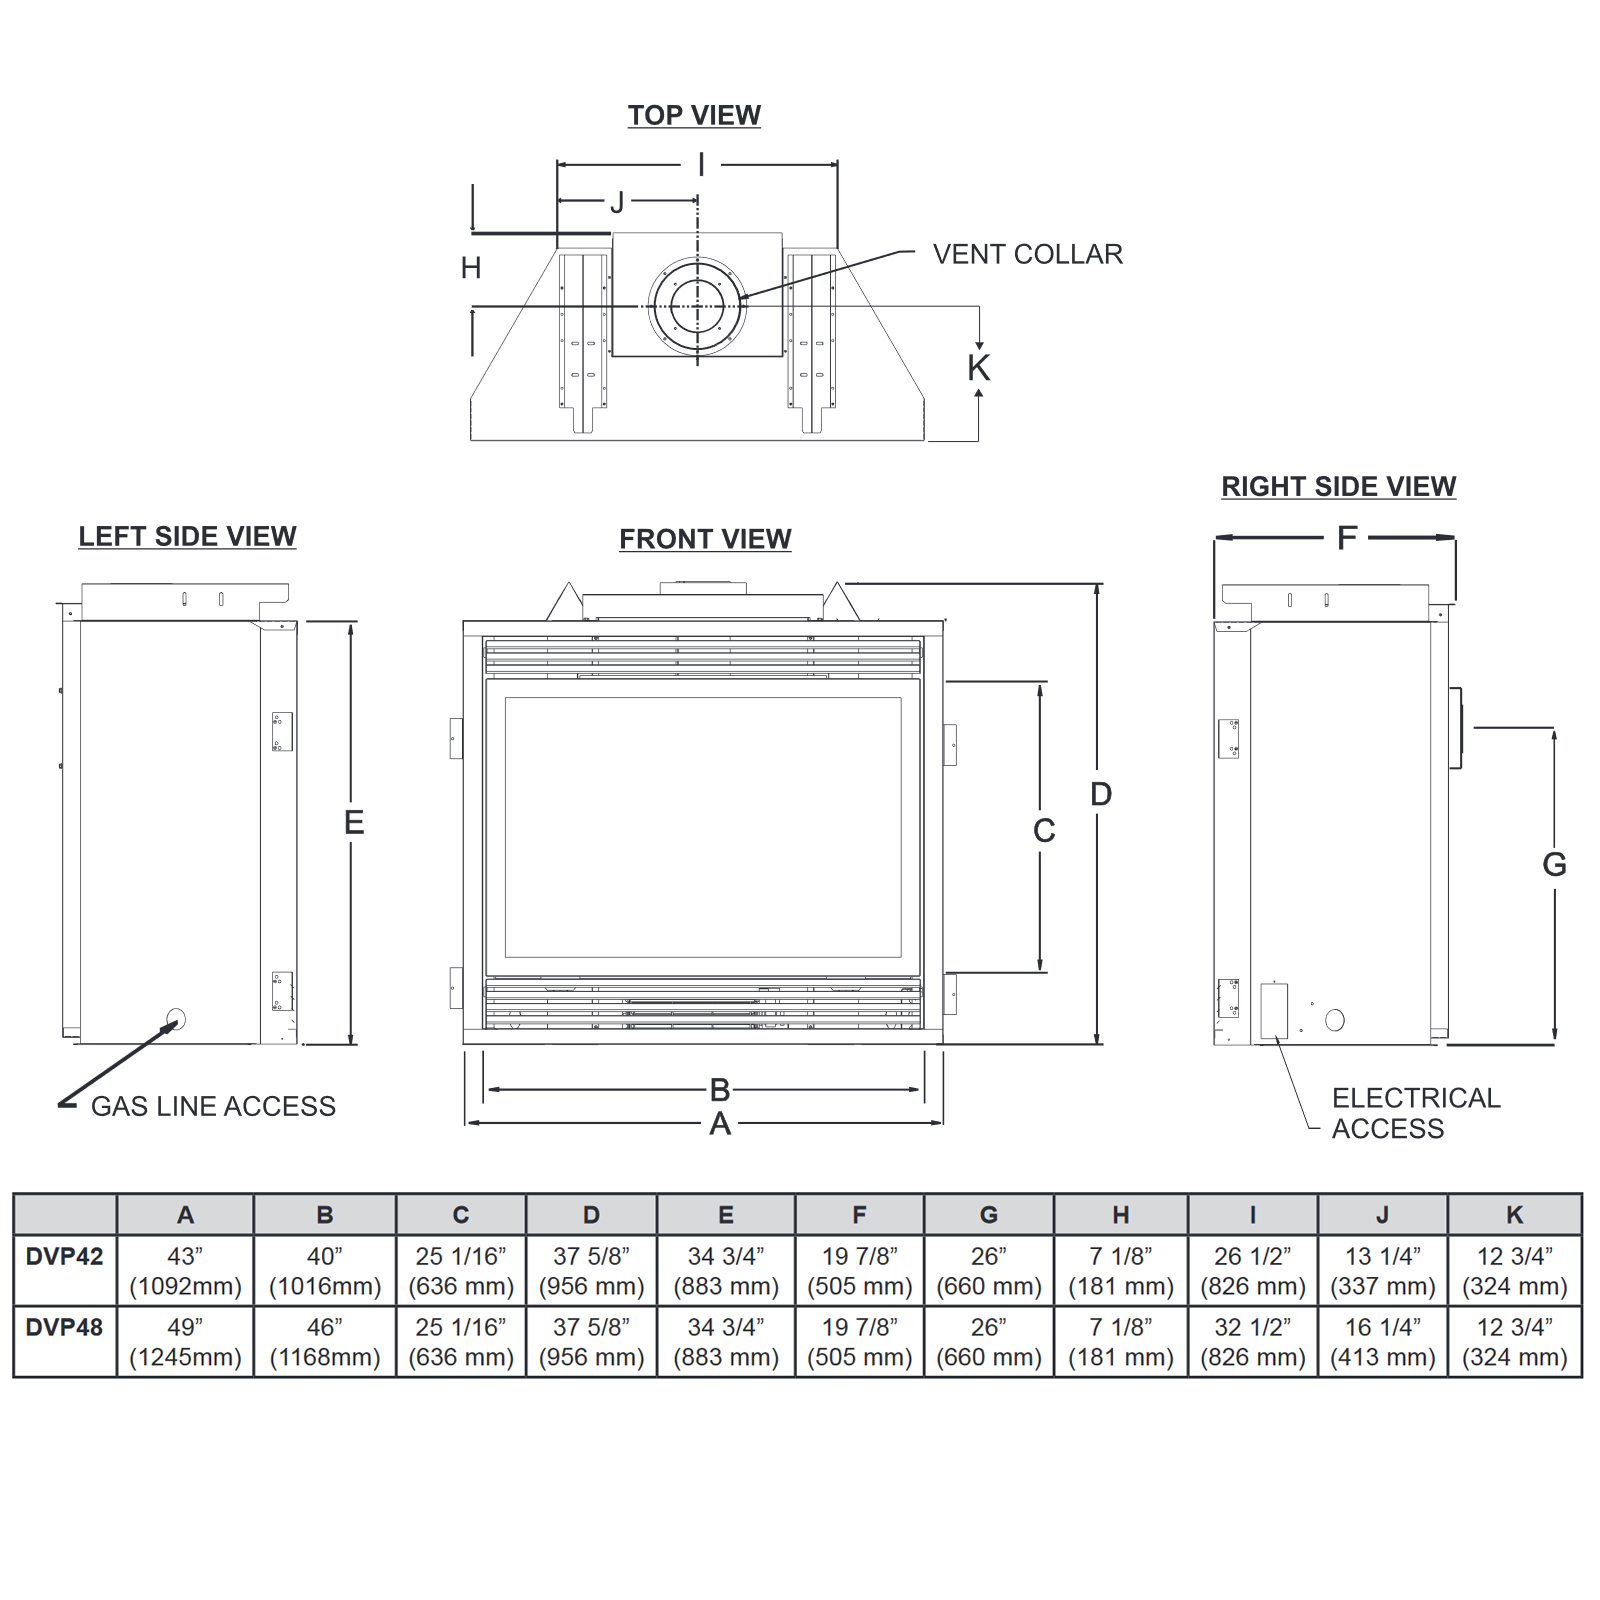 DVP42 Technical Drawing 1